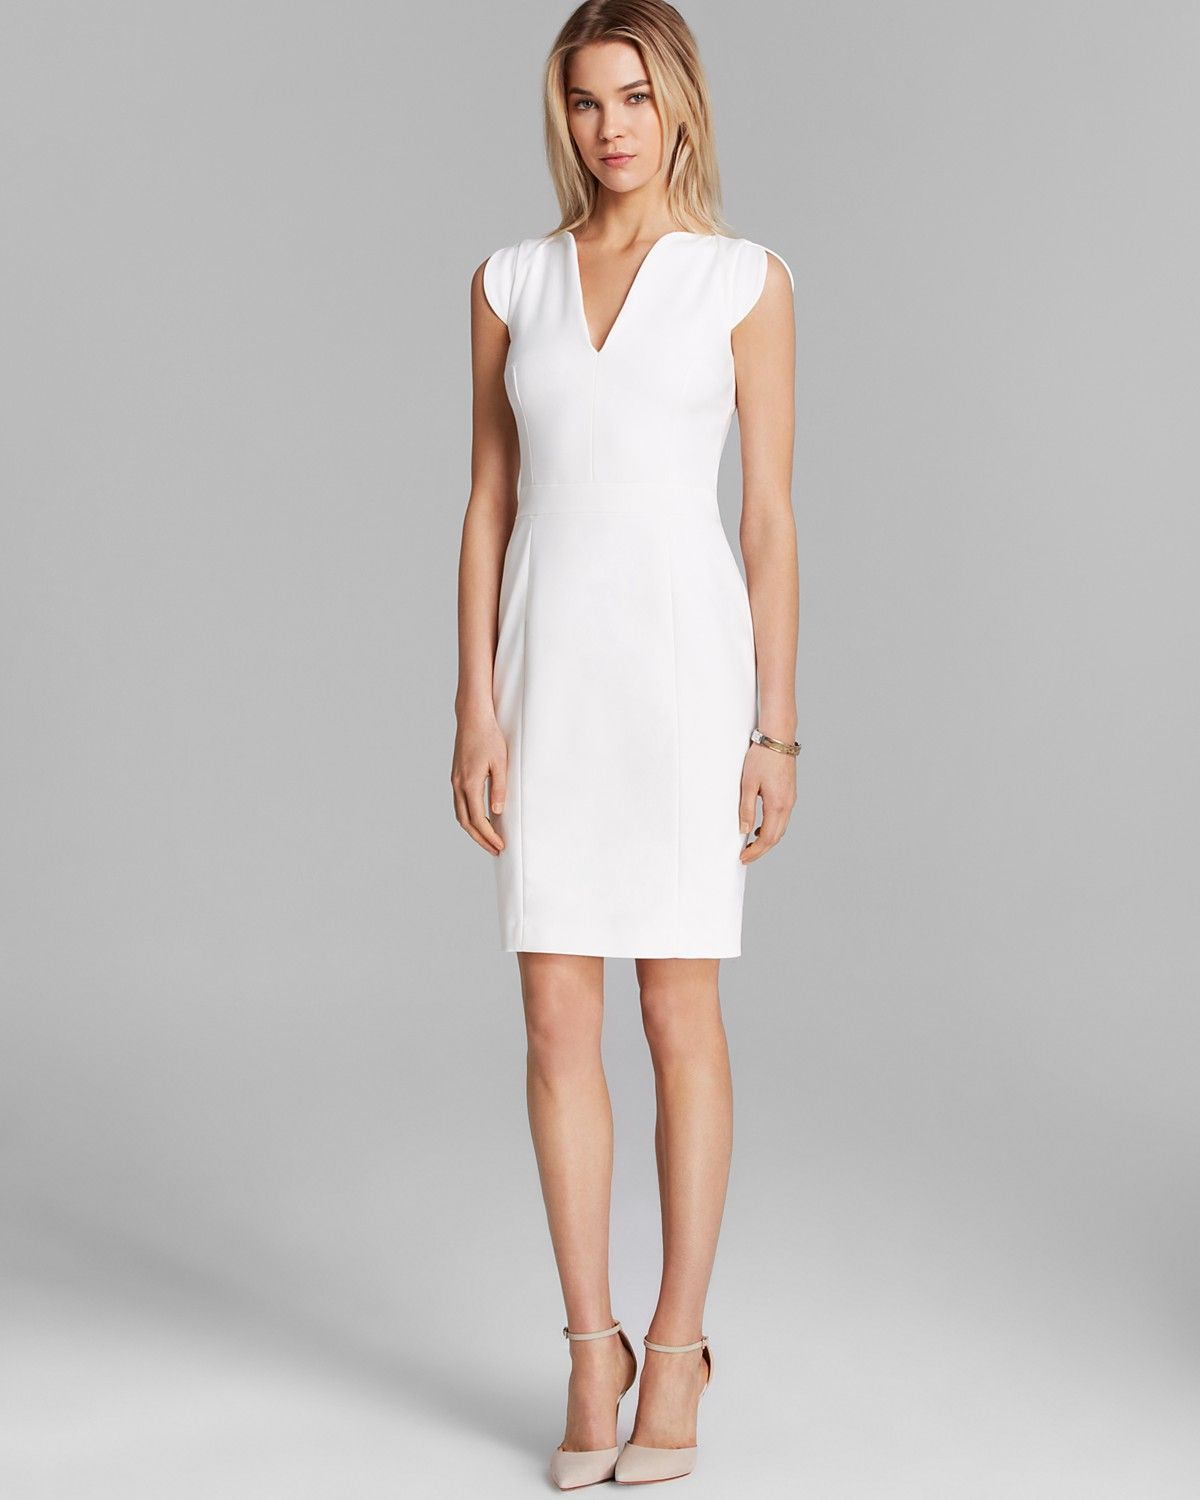 FRENCH CONNECTION Dress - Lolo Stretch Classics | Bloomingdale's